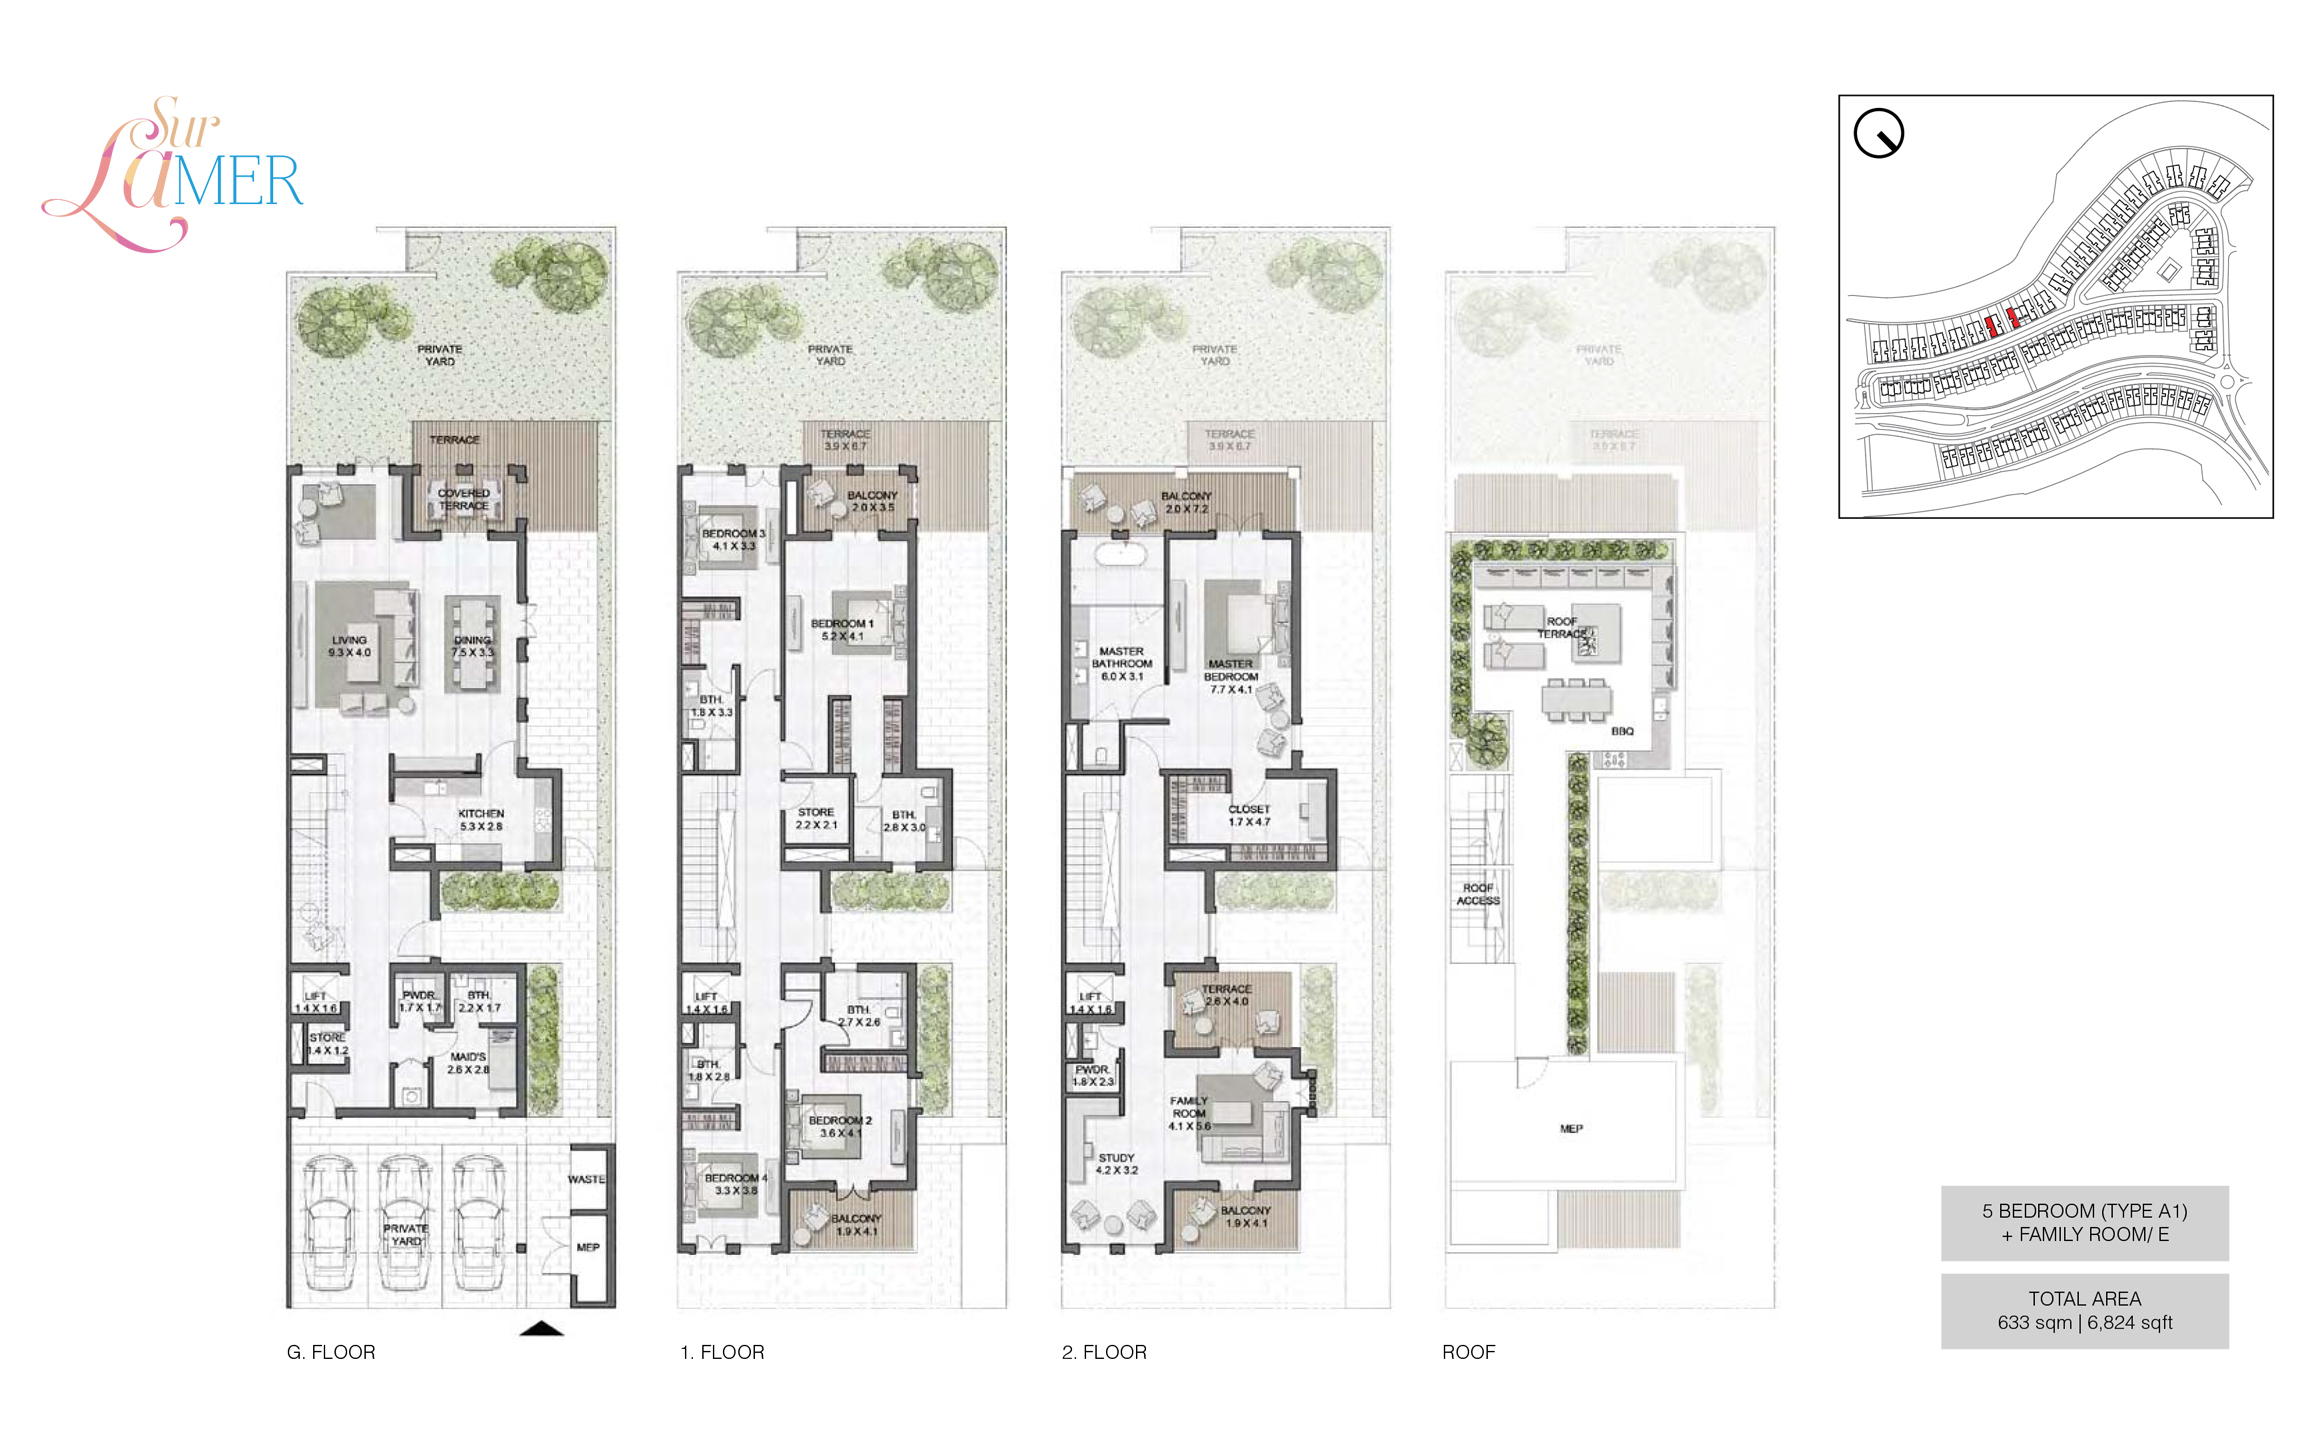 5 Bedroom Type A1, Size 6824 sq.ft